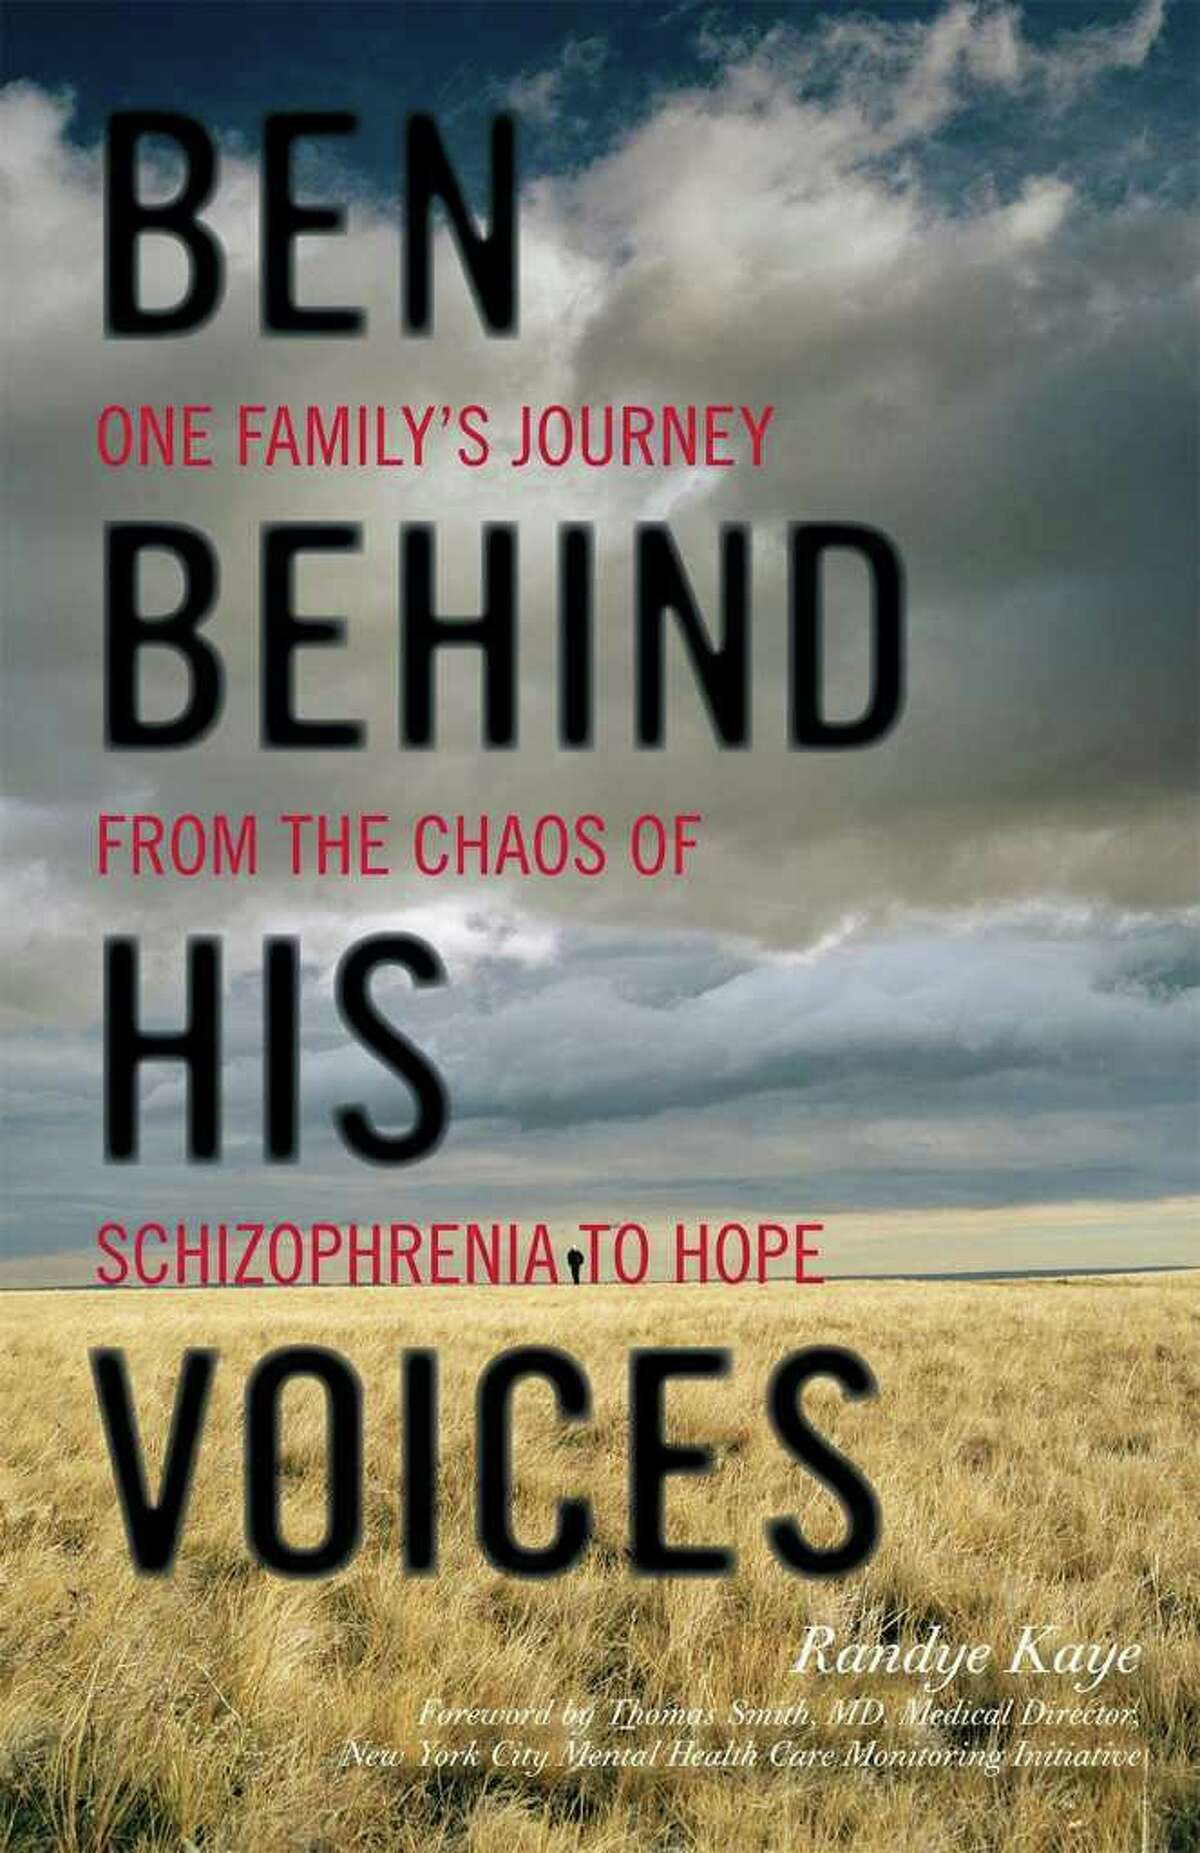 Radio personality and actress Randye Kaye of Trumbull is the author of a memoir about her struggles with her schizophrenic son,